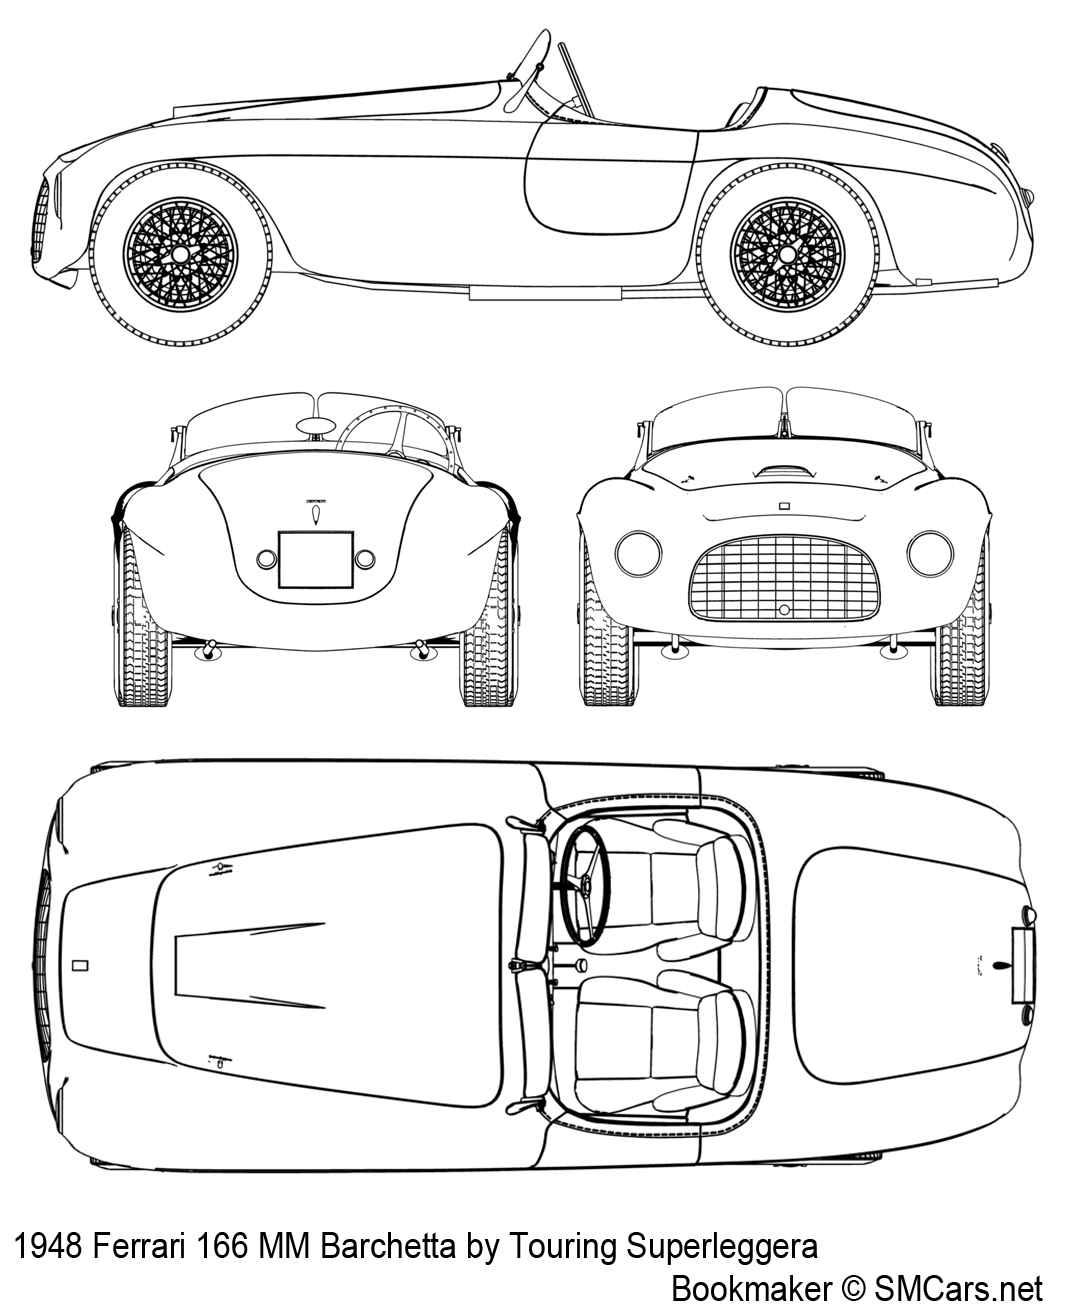 Ferrari 166 Mm likewise Aston Martin Db2 1951 besides Aston martin together with Bugatti Type 50 1932 besides Porsche Engine Blueprints. on aston martin db2